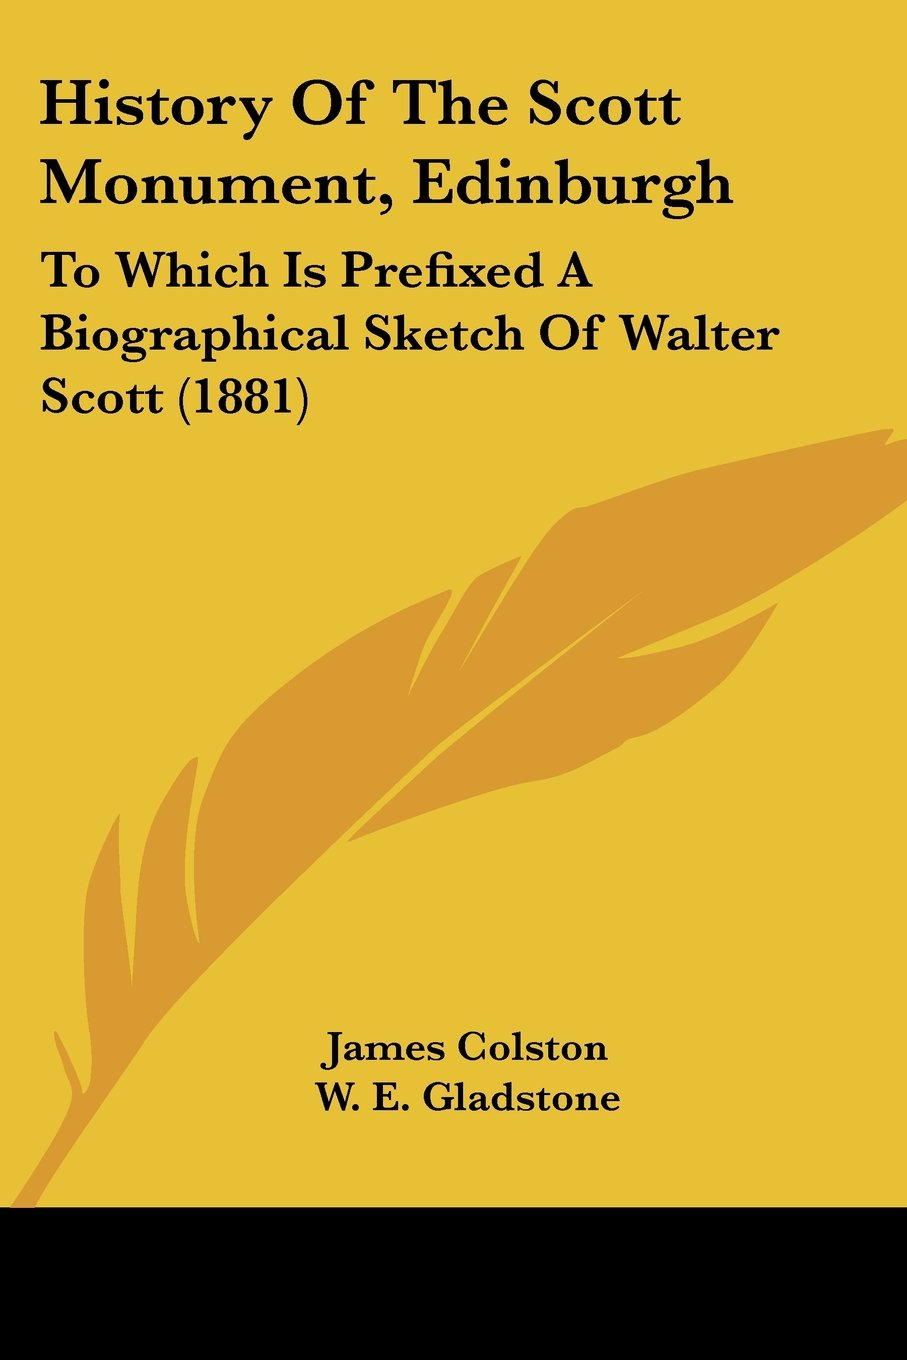 Download History Of The Scott Monument, Edinburgh: To Which Is Prefixed A Biographical Sketch Of Walter Scott (1881) PDF